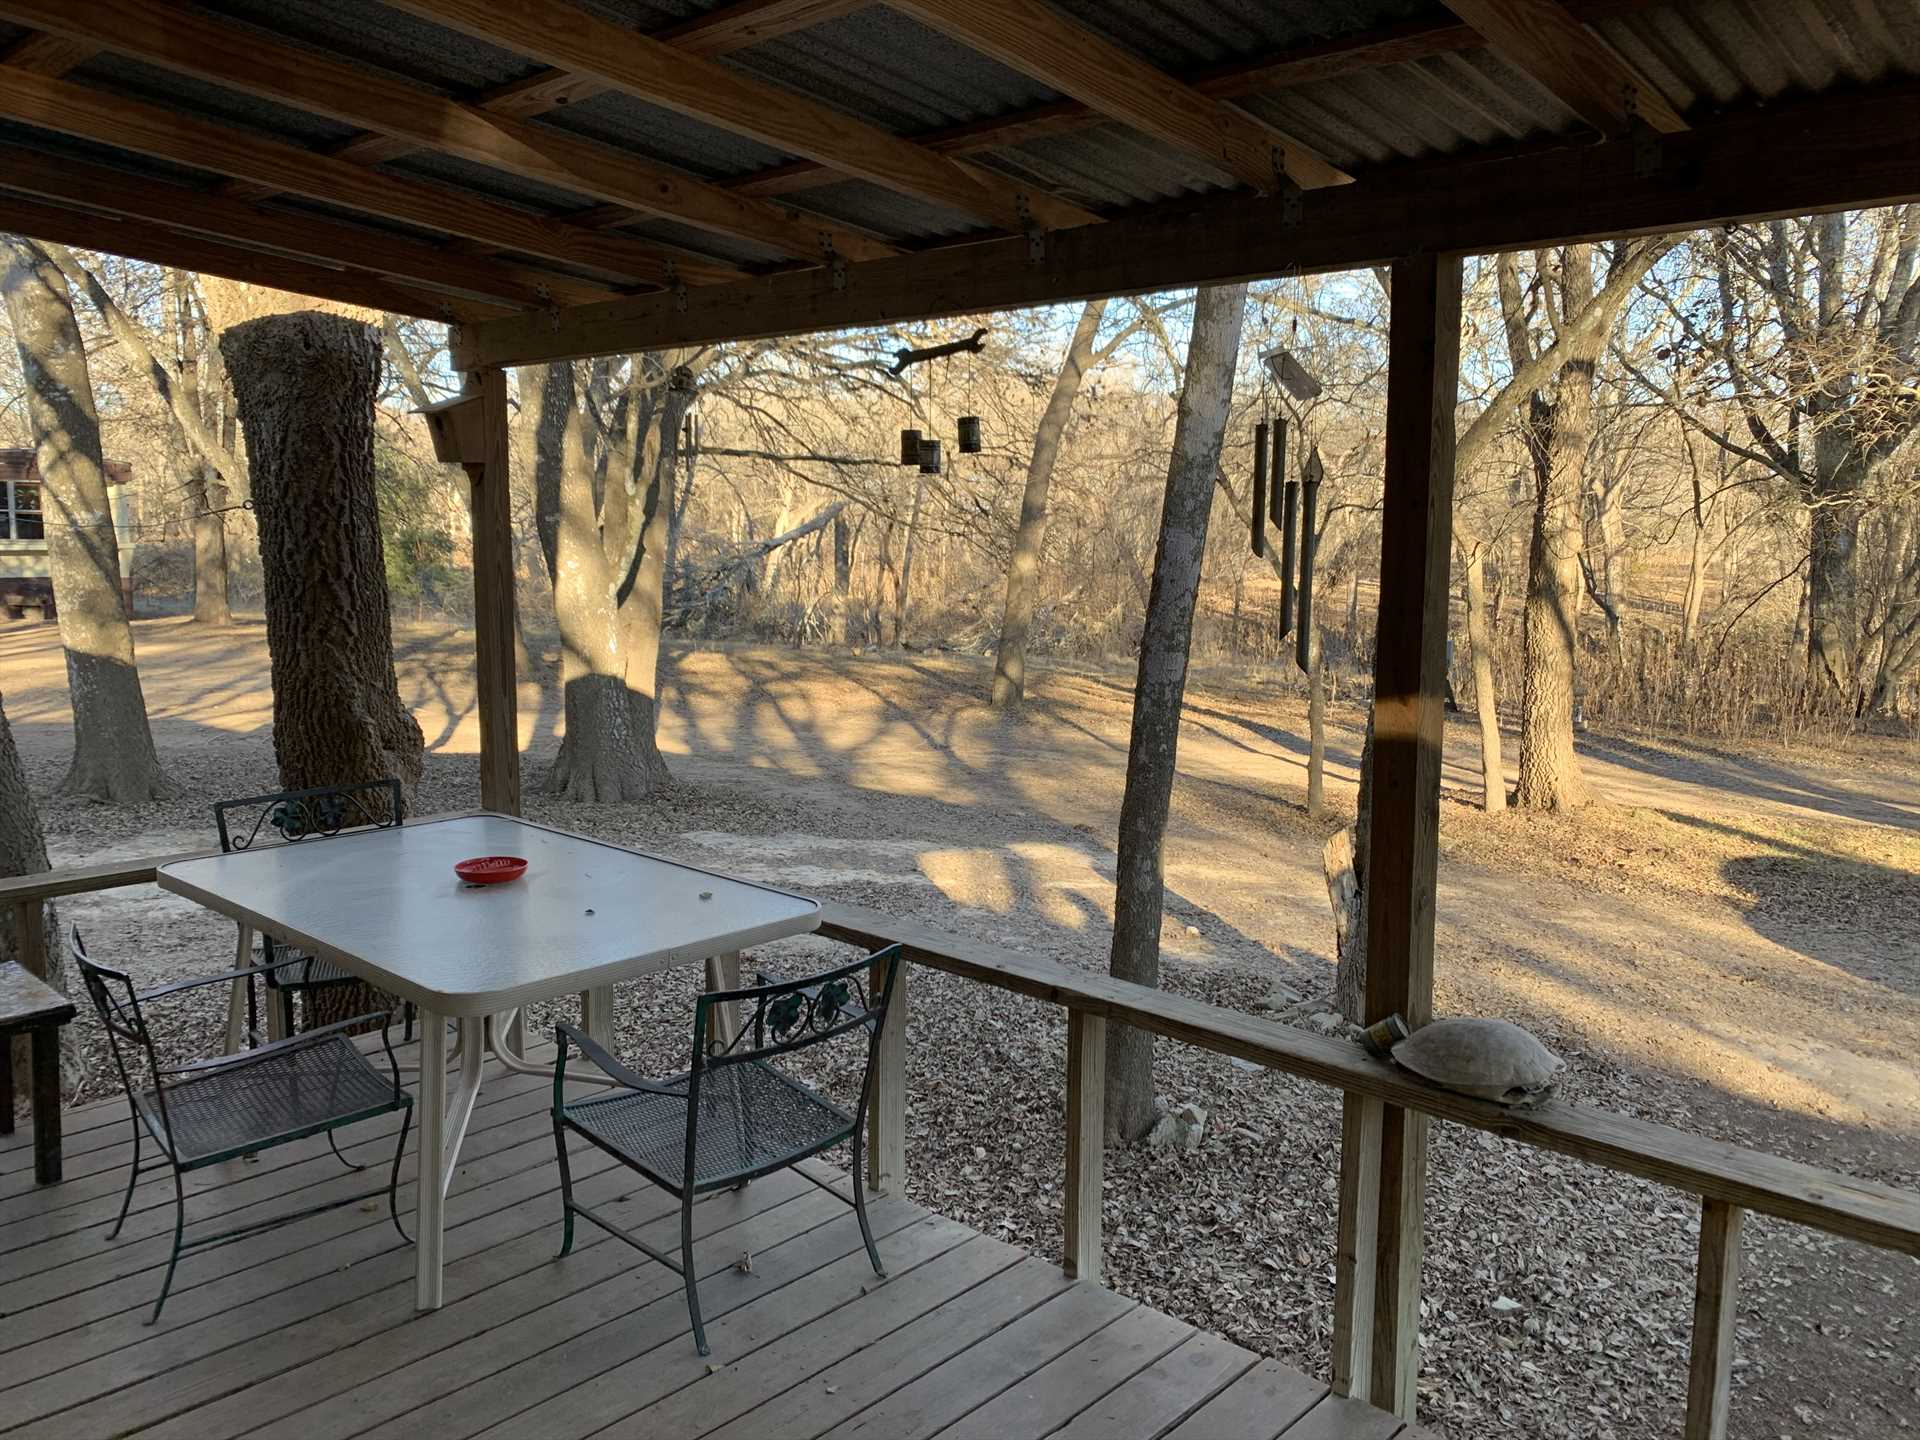 You can almost hear the wind chimes! The shaded patio is a great spot to watch wildlife and admire some of the Hill Country's natural beauty.